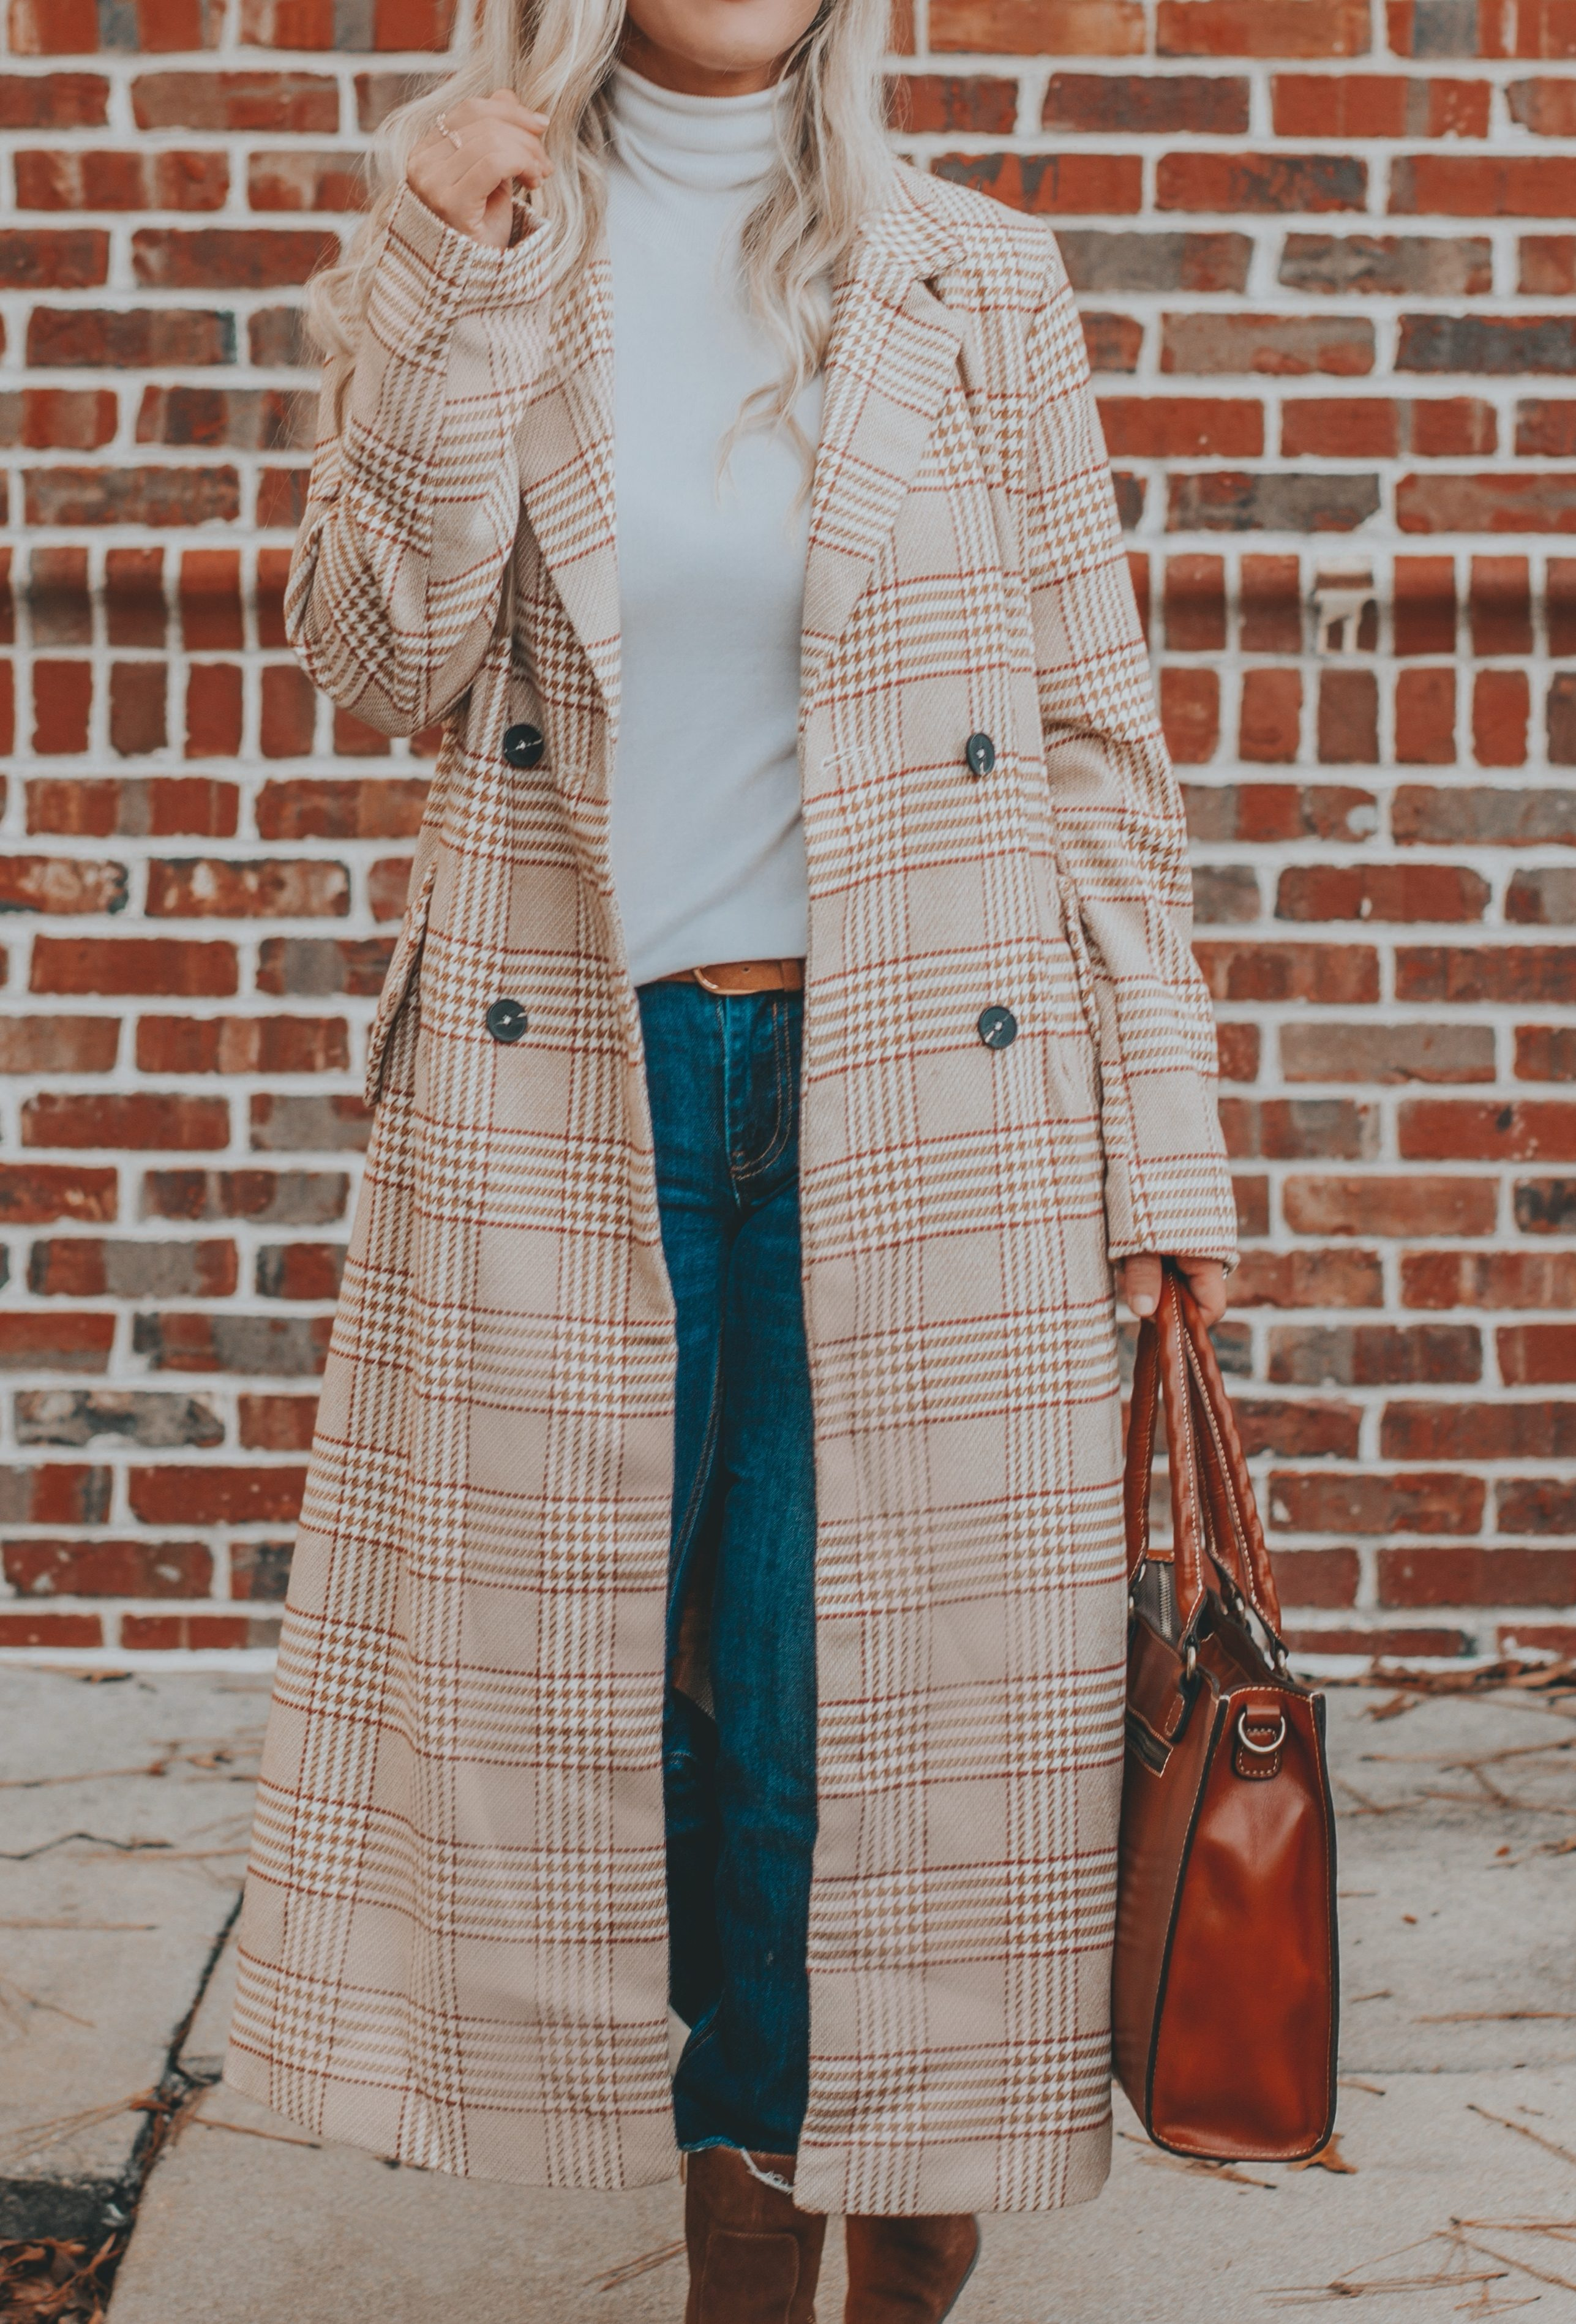 High Quality on a Low Budget | My $51 Plaid Longline Coat Find | BreeAtLast.com